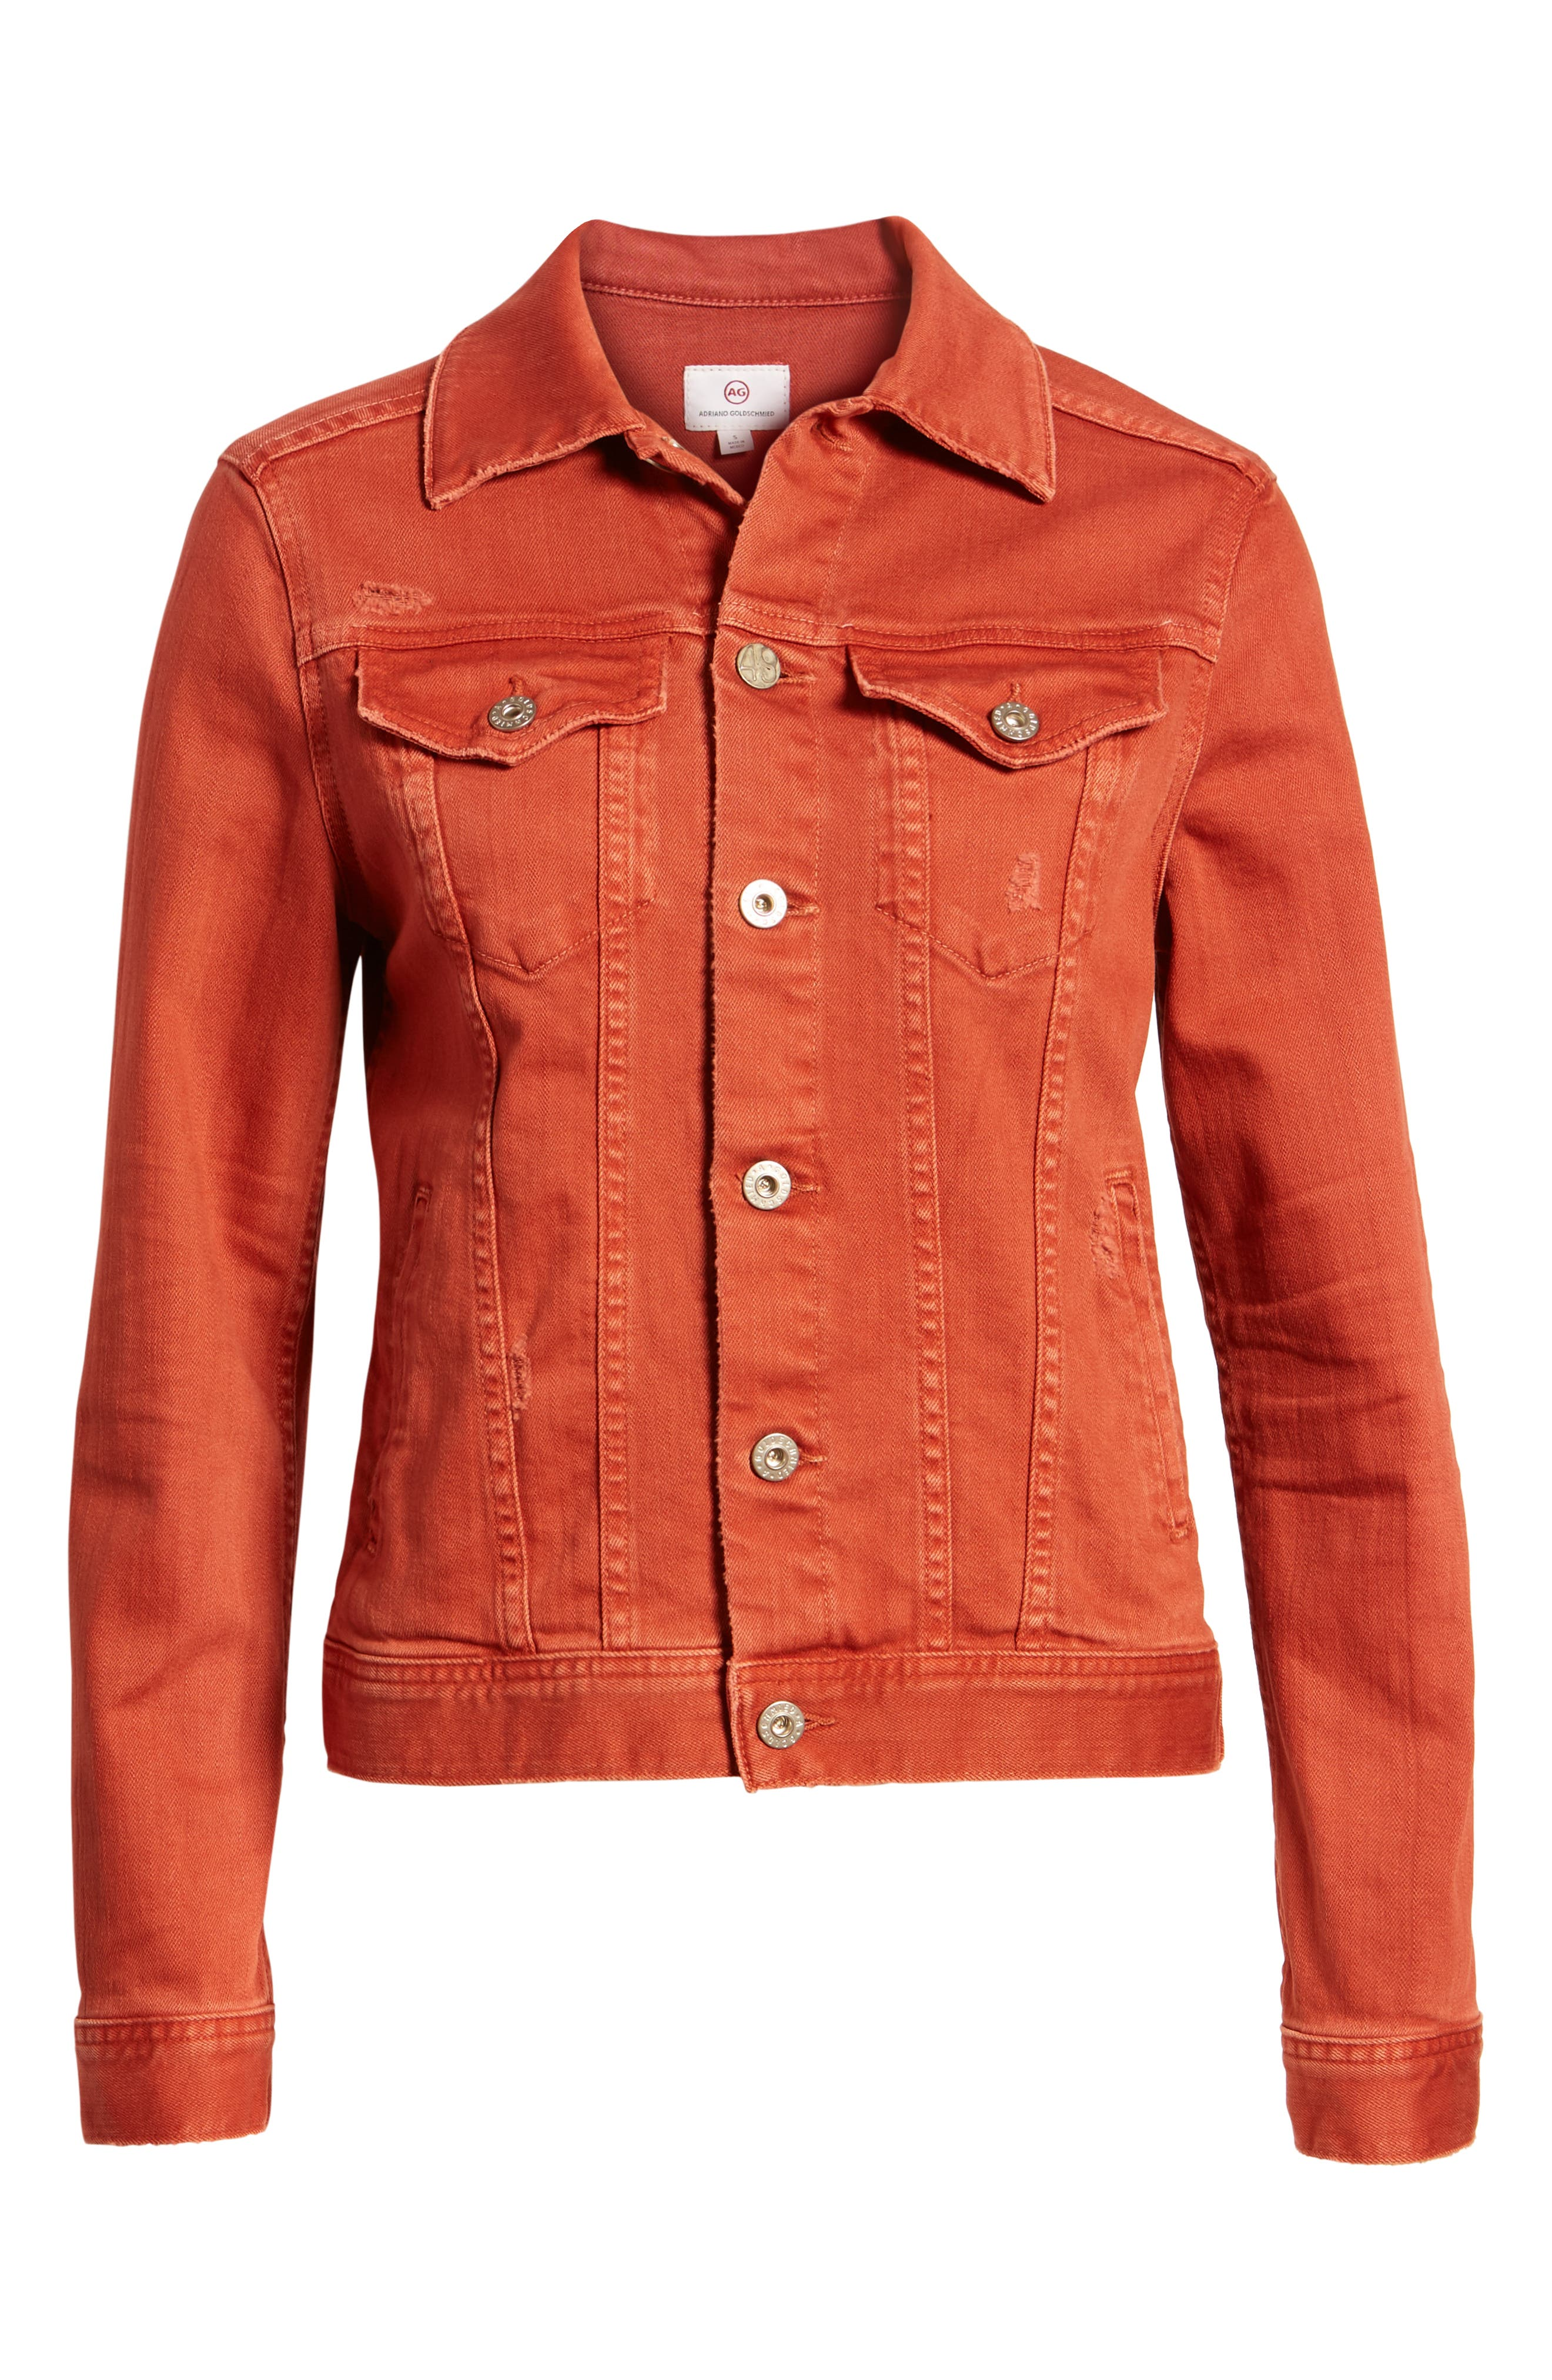 Mya Denim Jacket,                             Alternate thumbnail 6, color,                             10 YEARS REMEDY FIREBRICK